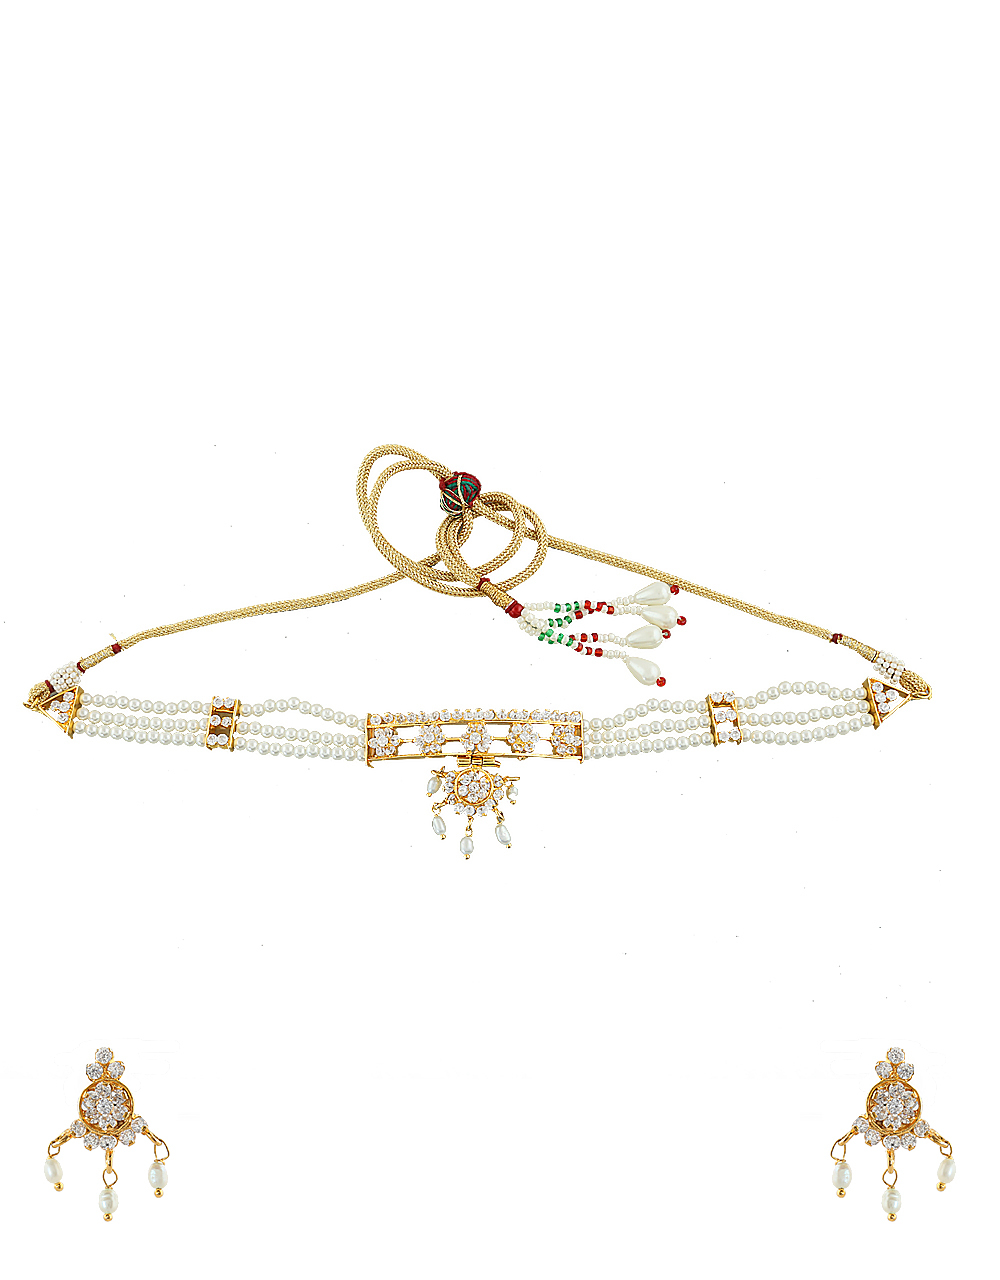 Moti Choker Necklace Styled With Pearls And Sparkling Stones